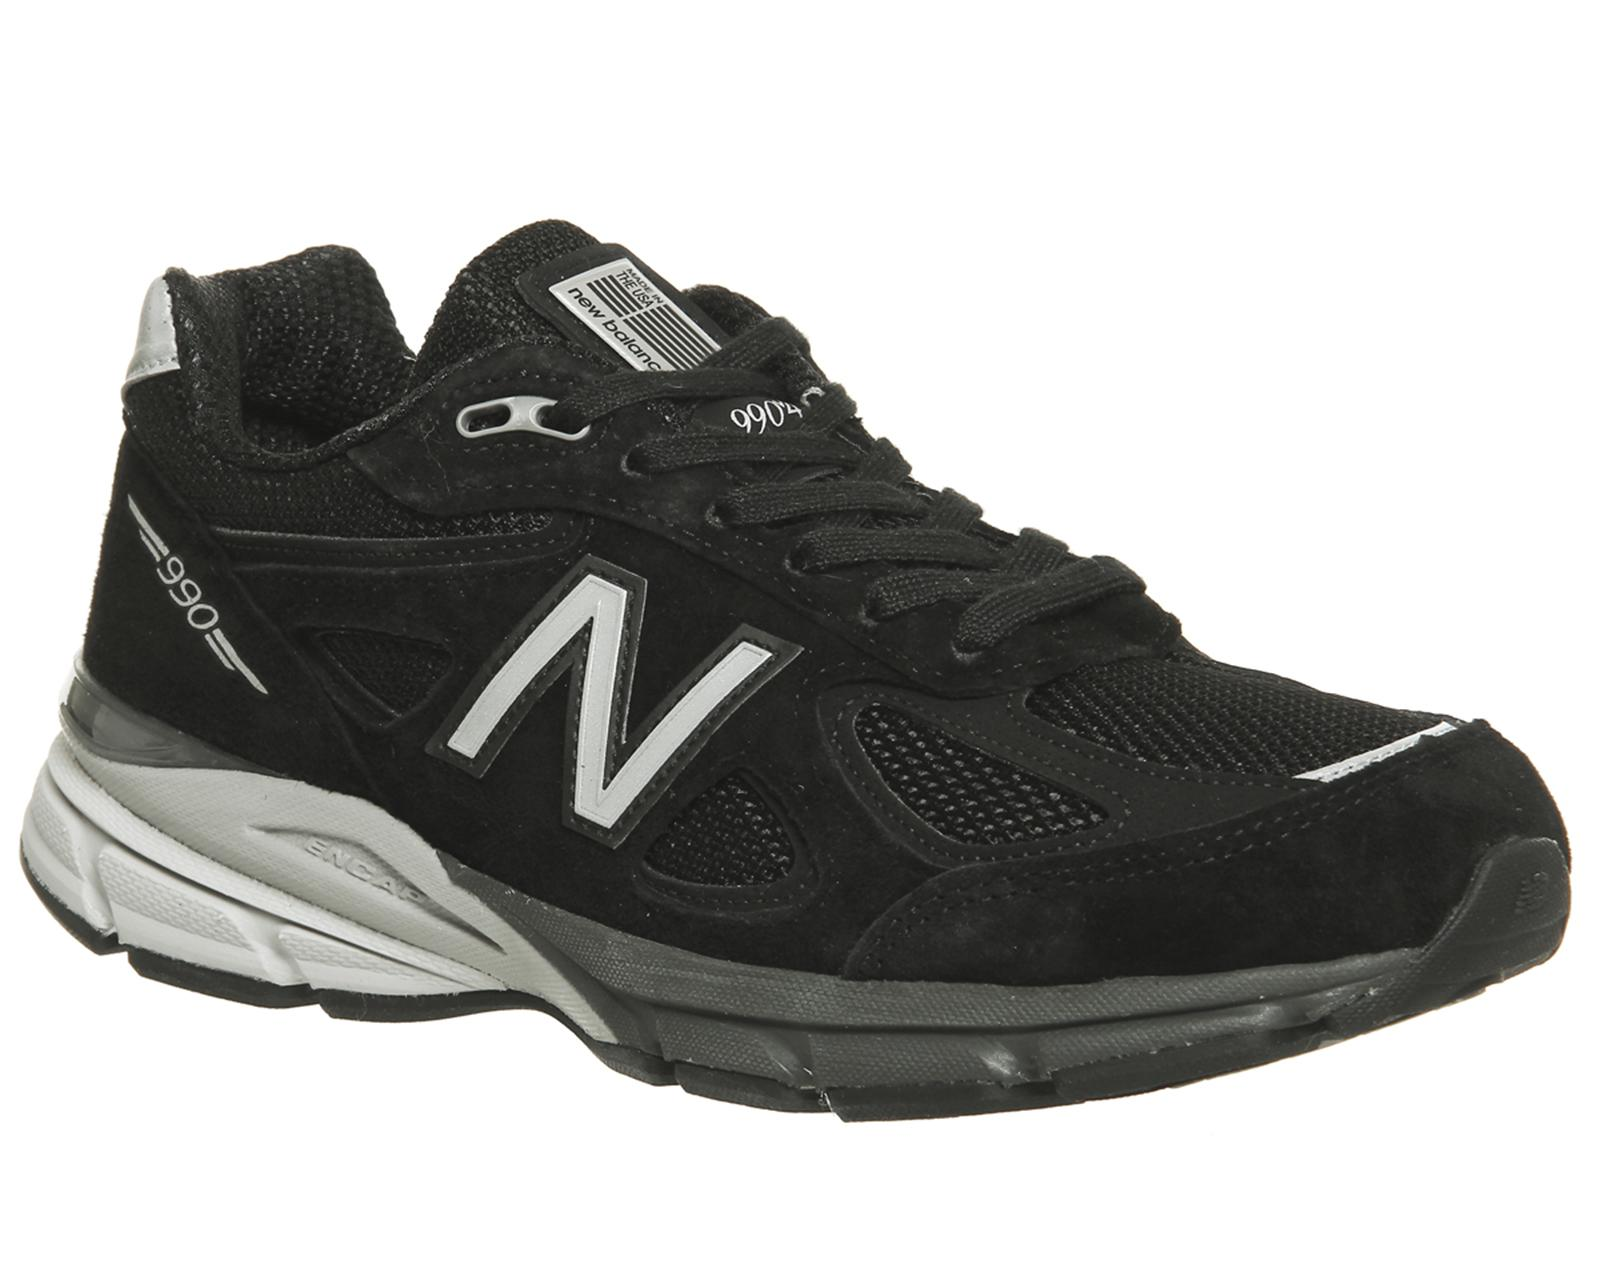 premium selection ccc14 17778 New Balance Black 990 Trainers for men